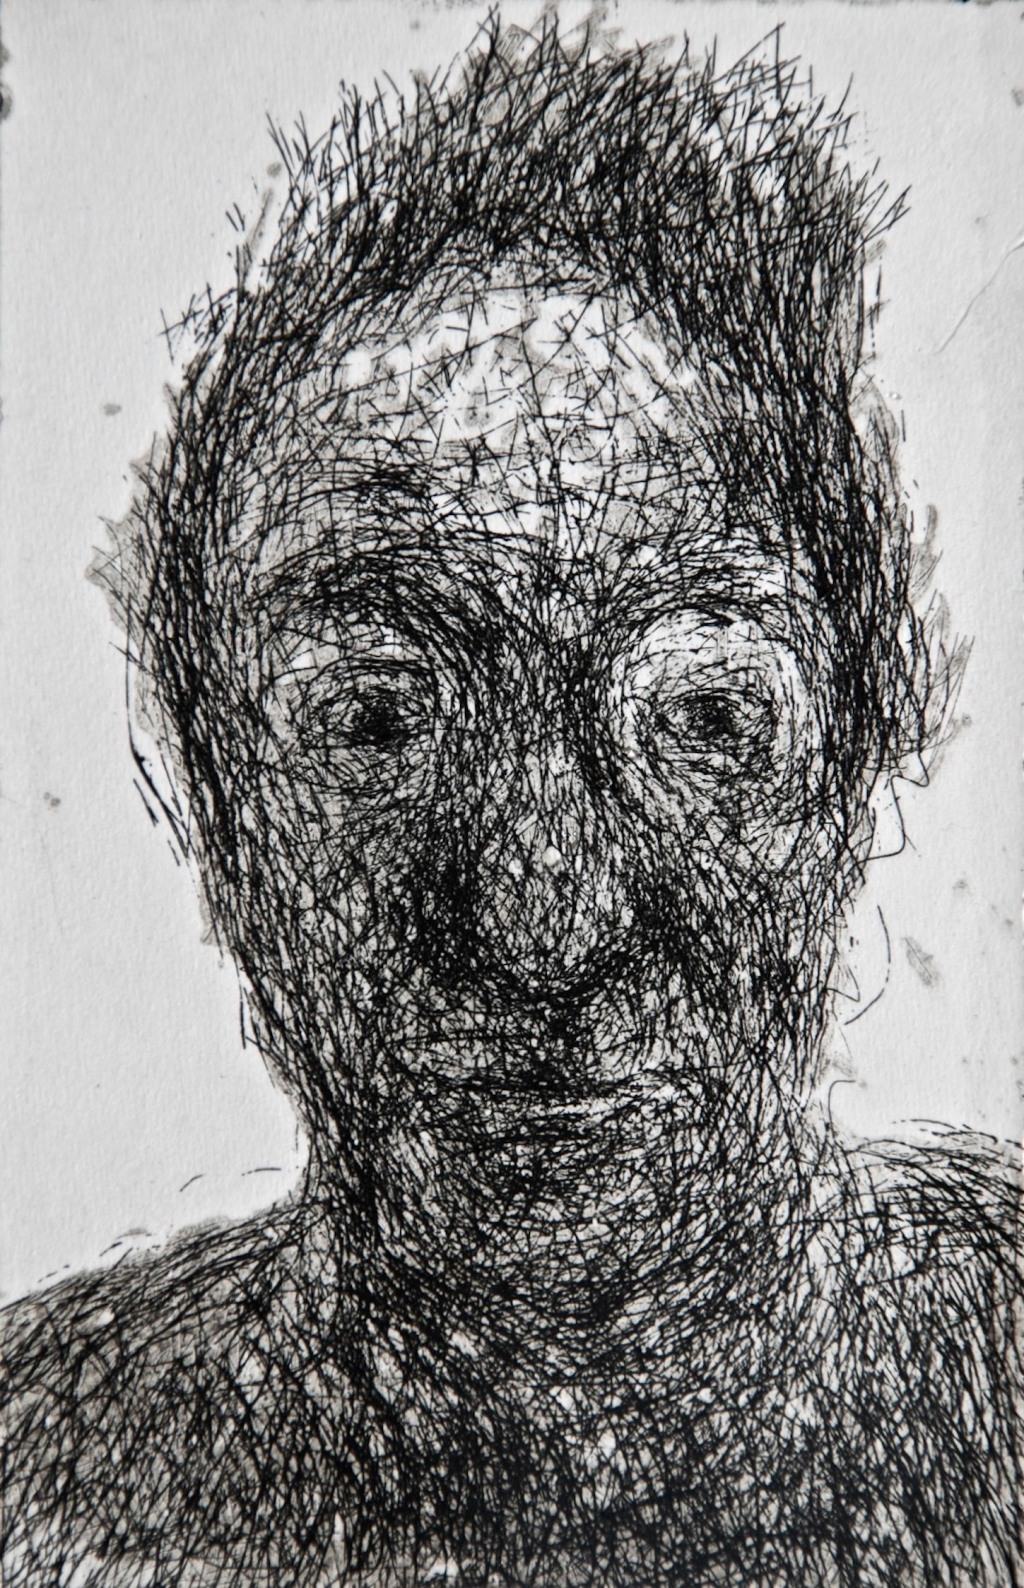 Mood 24, multi-states etching, 10.5 x 7 cm